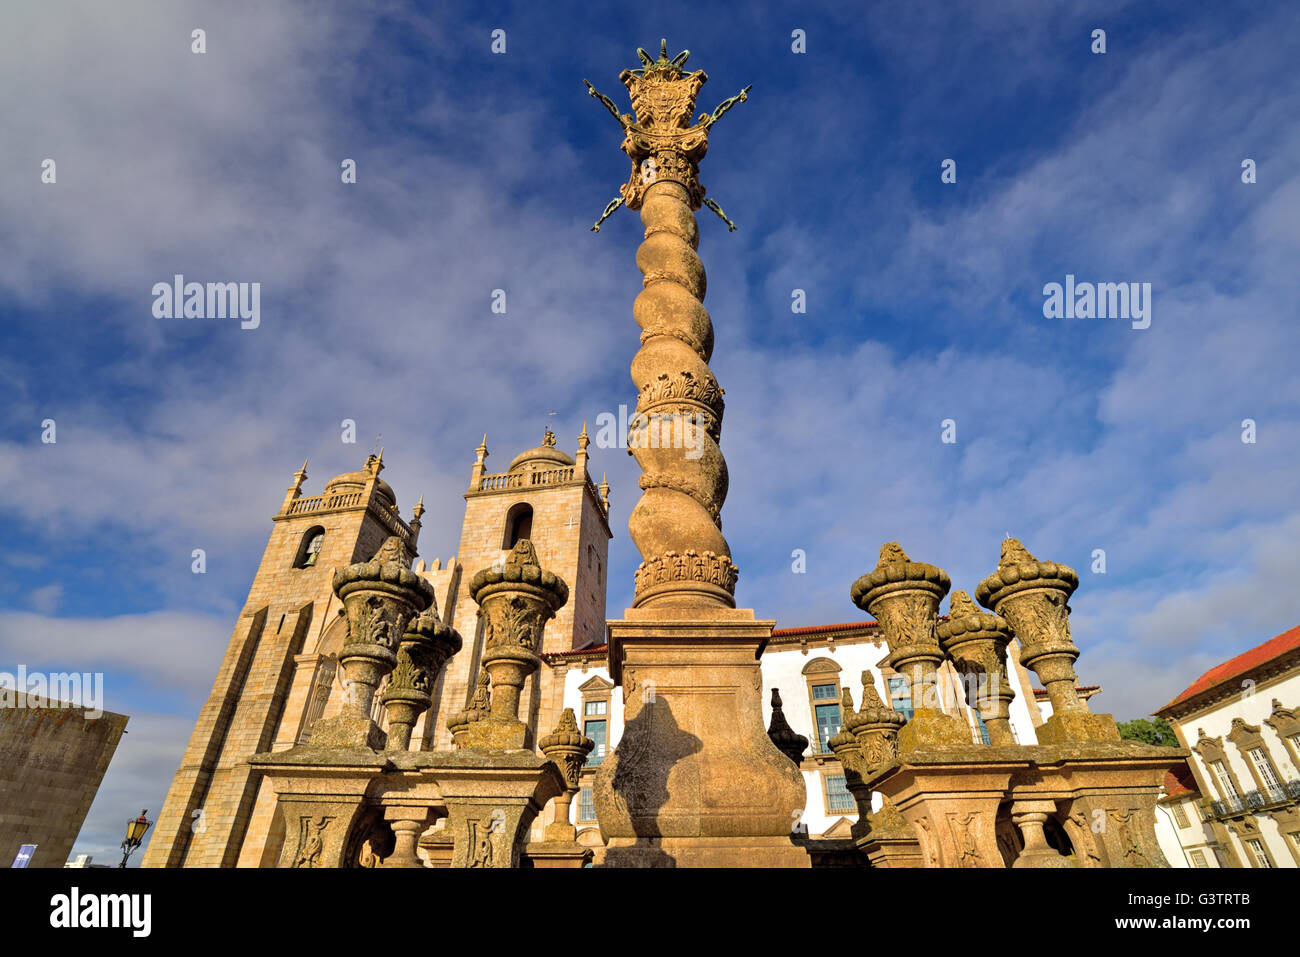 Portugal, Oporto: Romanesque pillory and towers of the Cathedral - Stock Image